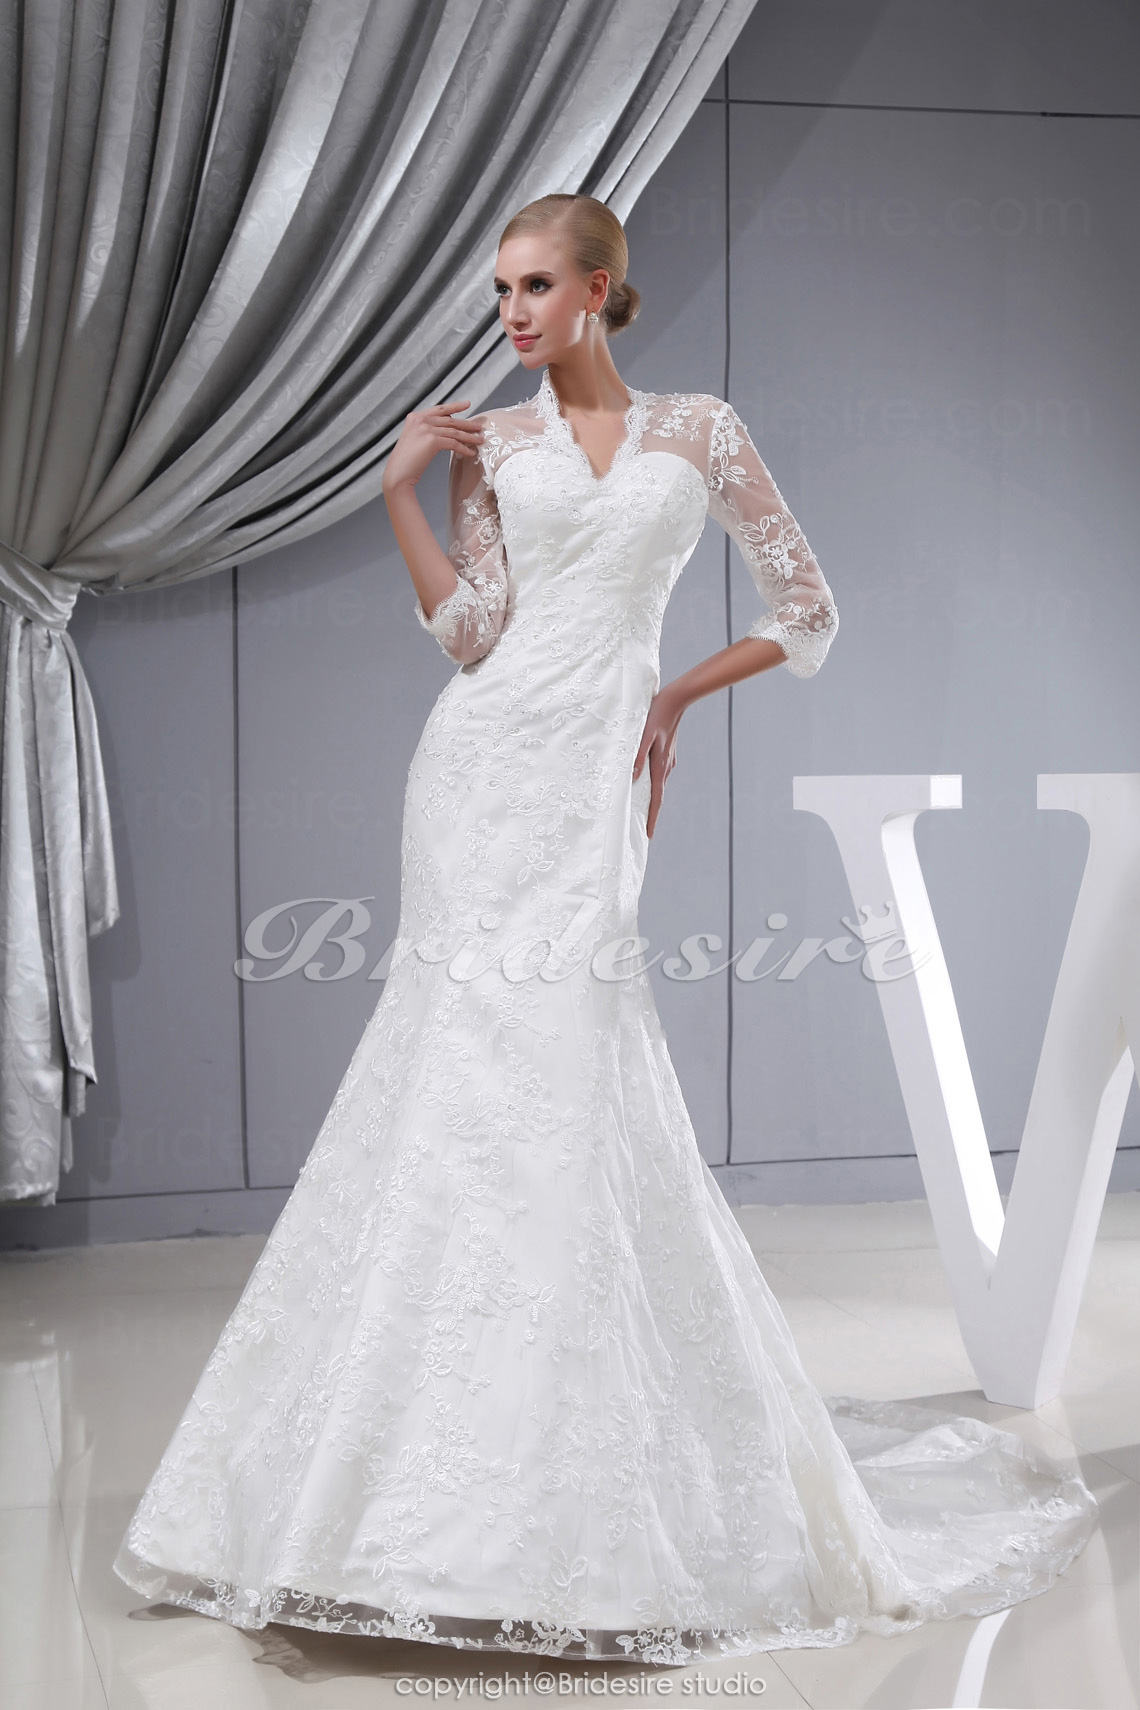 Trumpet/Mermaid V-neck Sweep Train 3/4 Length Sleeve Lace Weddin